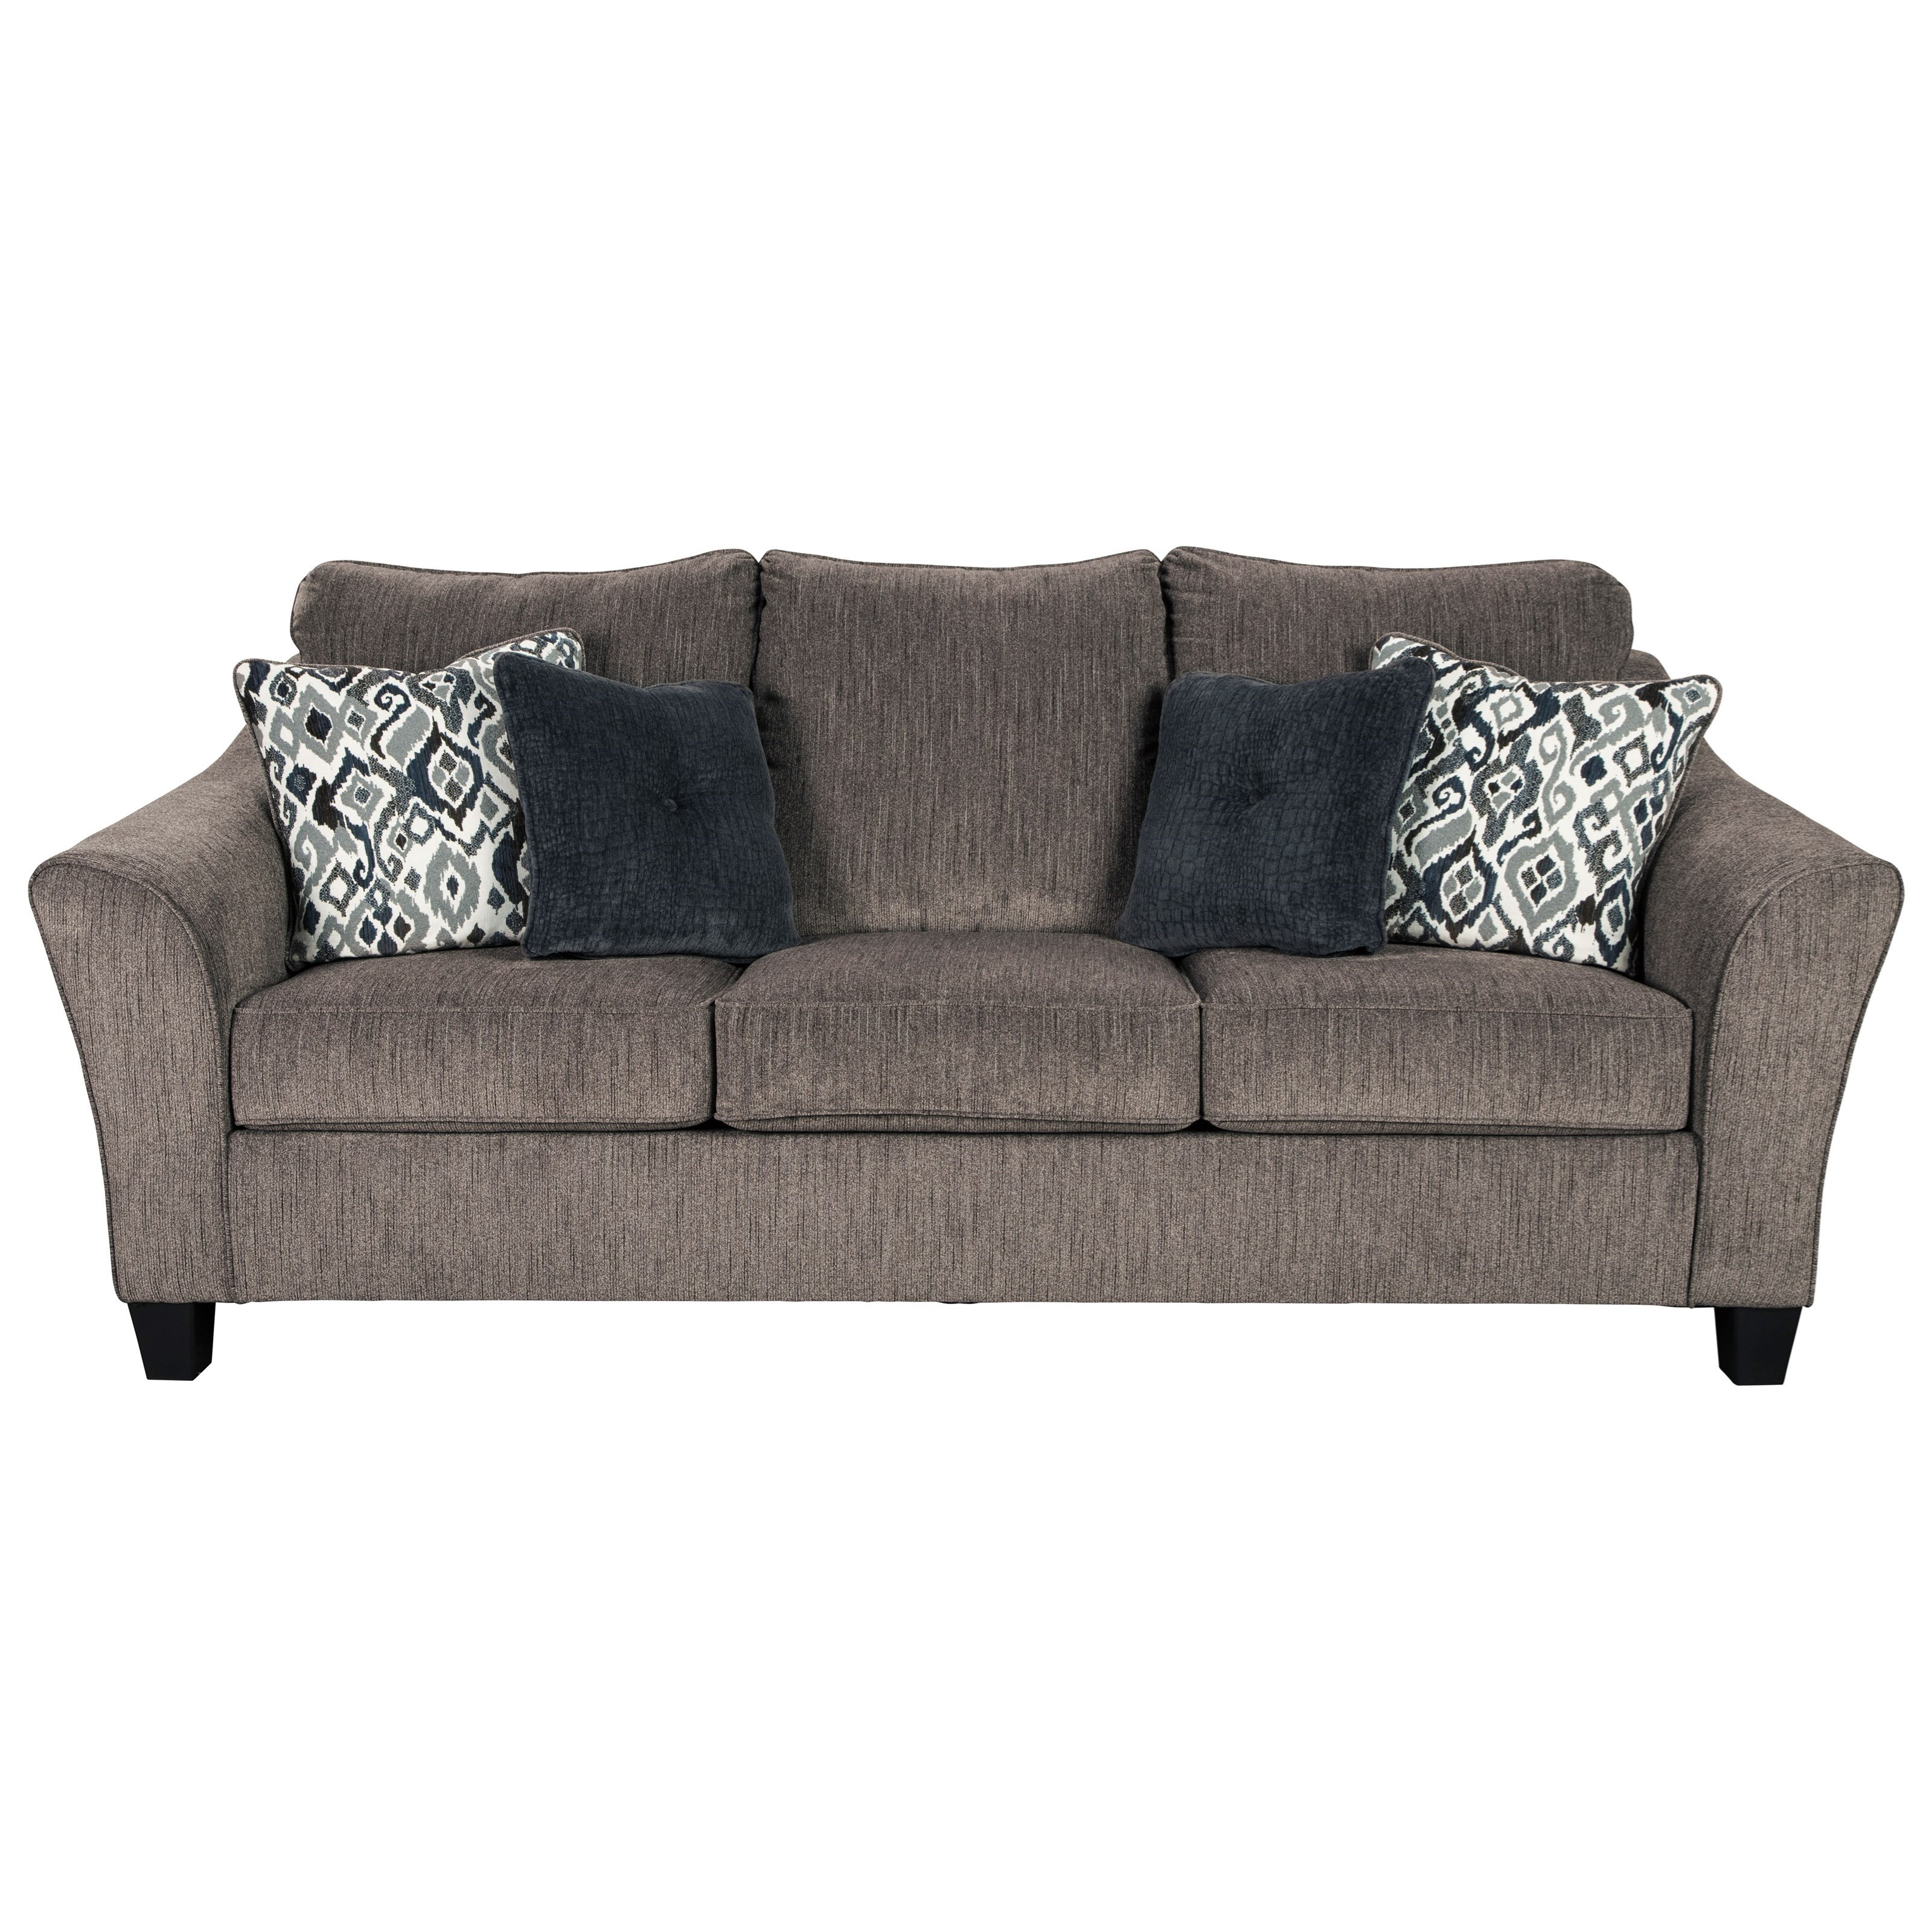 Nemoli Queen Sofa Sleeper by Signature Design by Ashley at Beds N Stuff